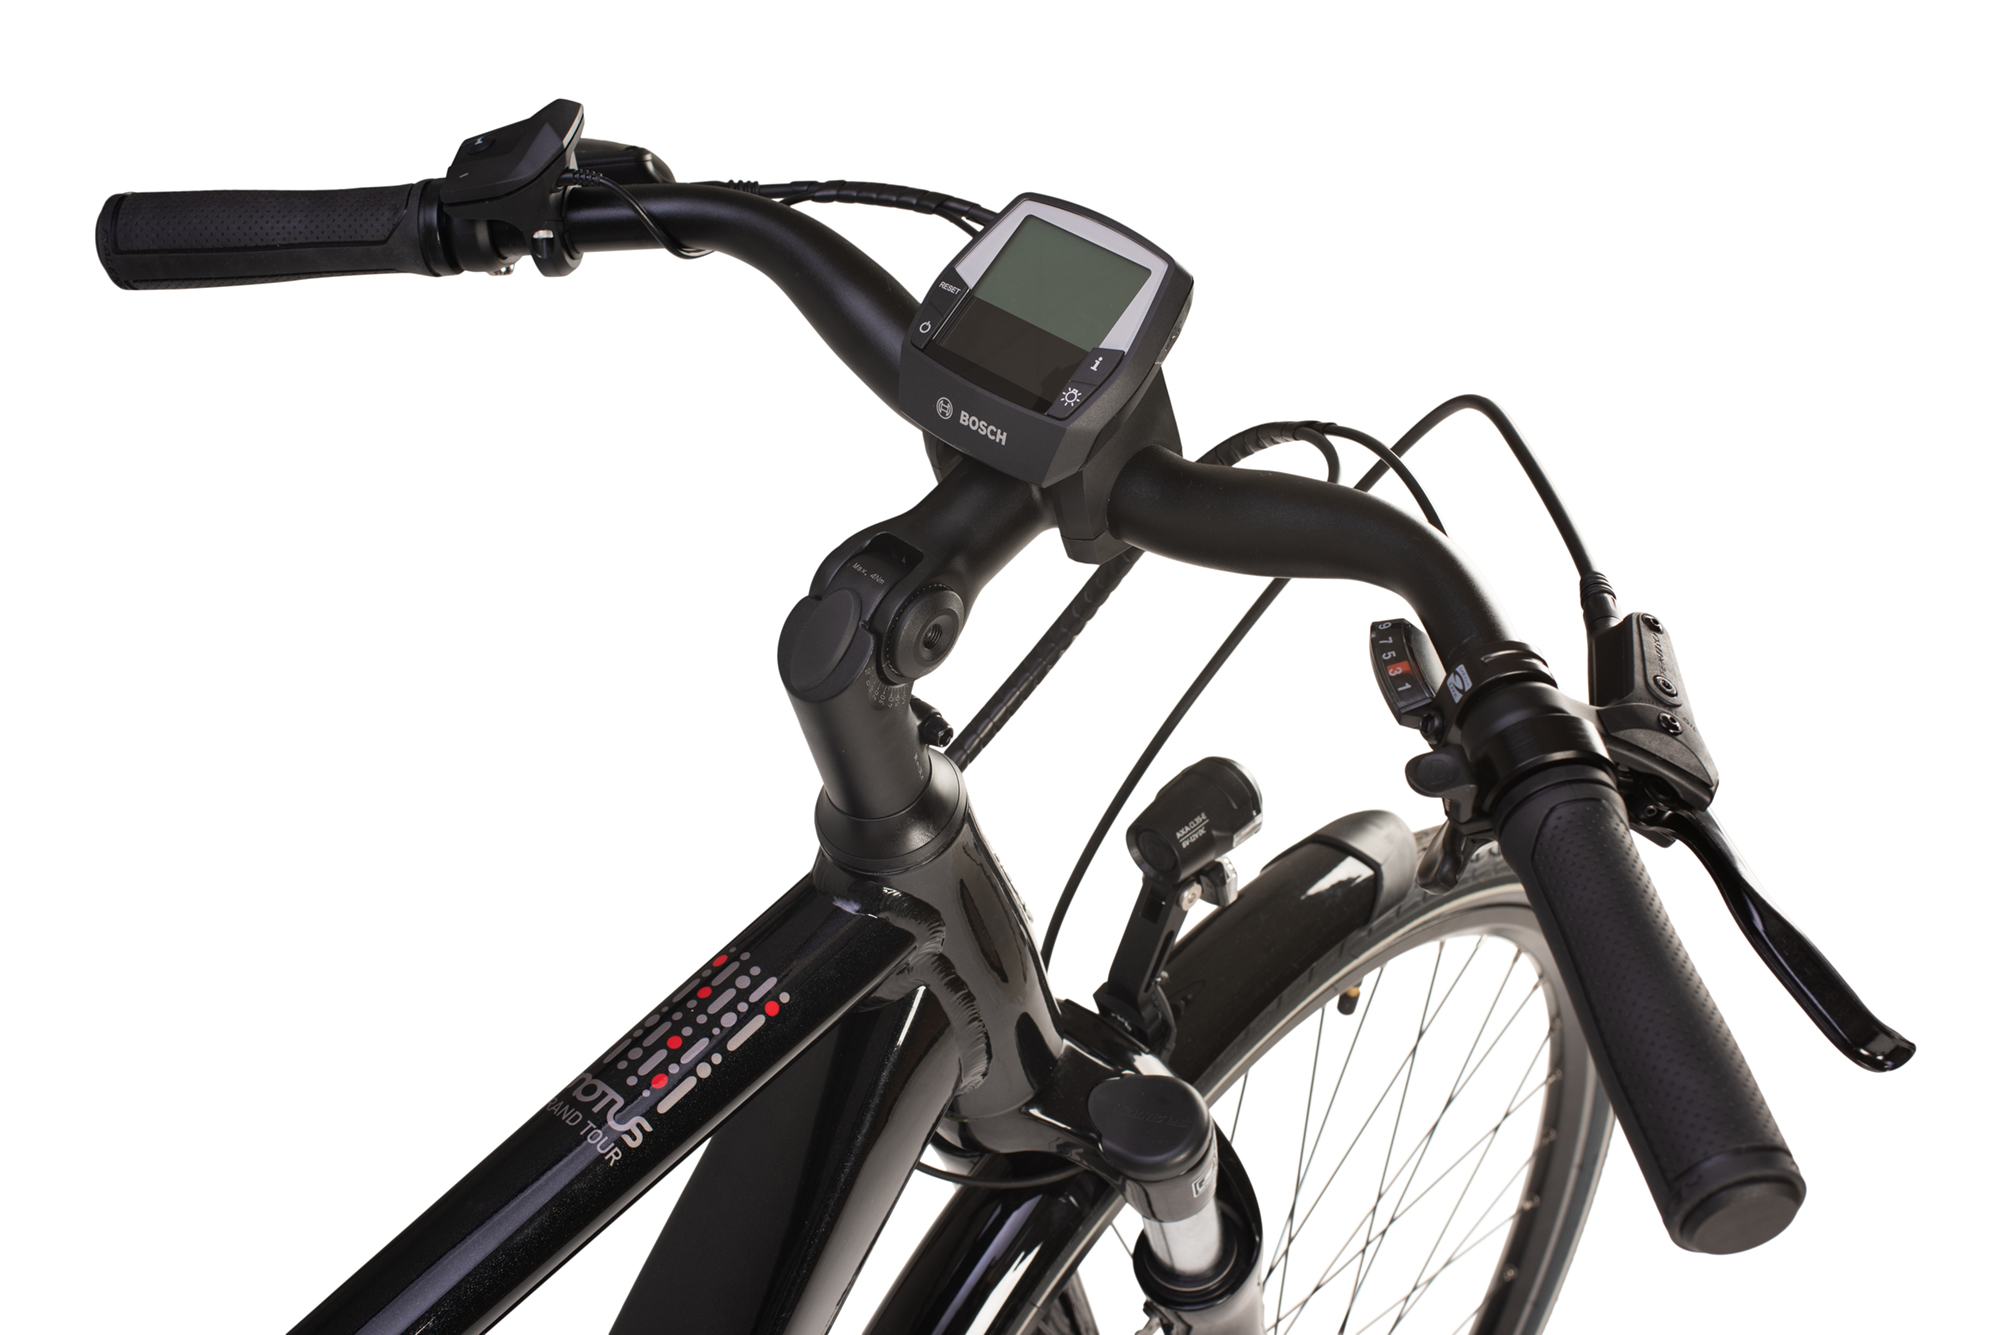 Handlebars and controller on the Raleigh Motus Grand Tour electric bike